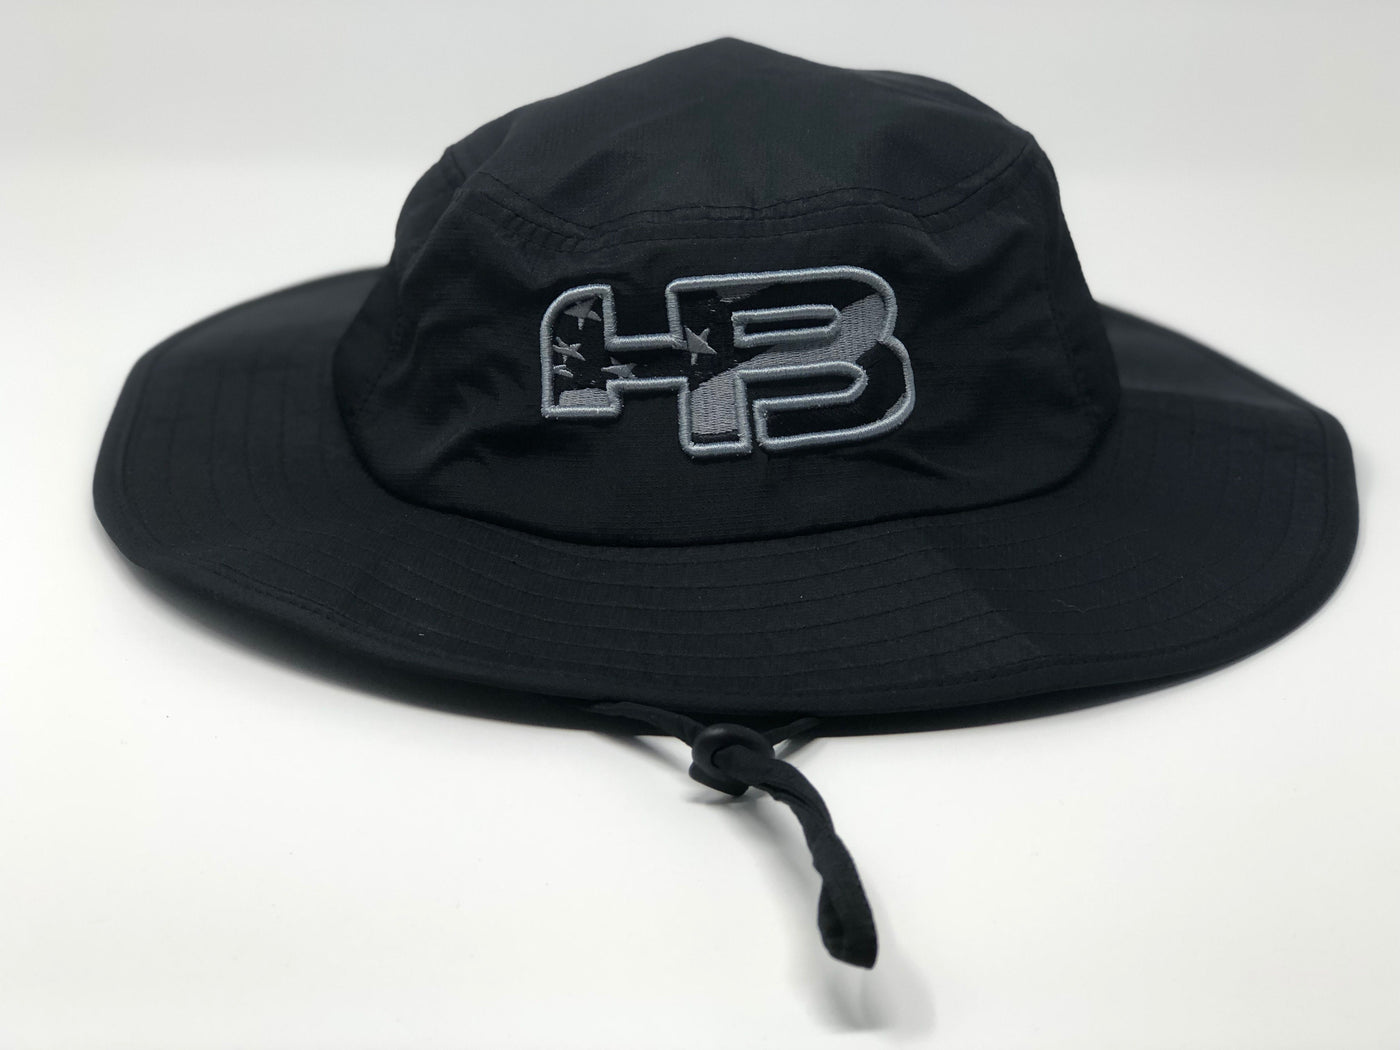 92cfe999b9b368 HB Sports Exclusive Pacific 1946 Boonie Bucket Cap: Black/Dark Camo USA